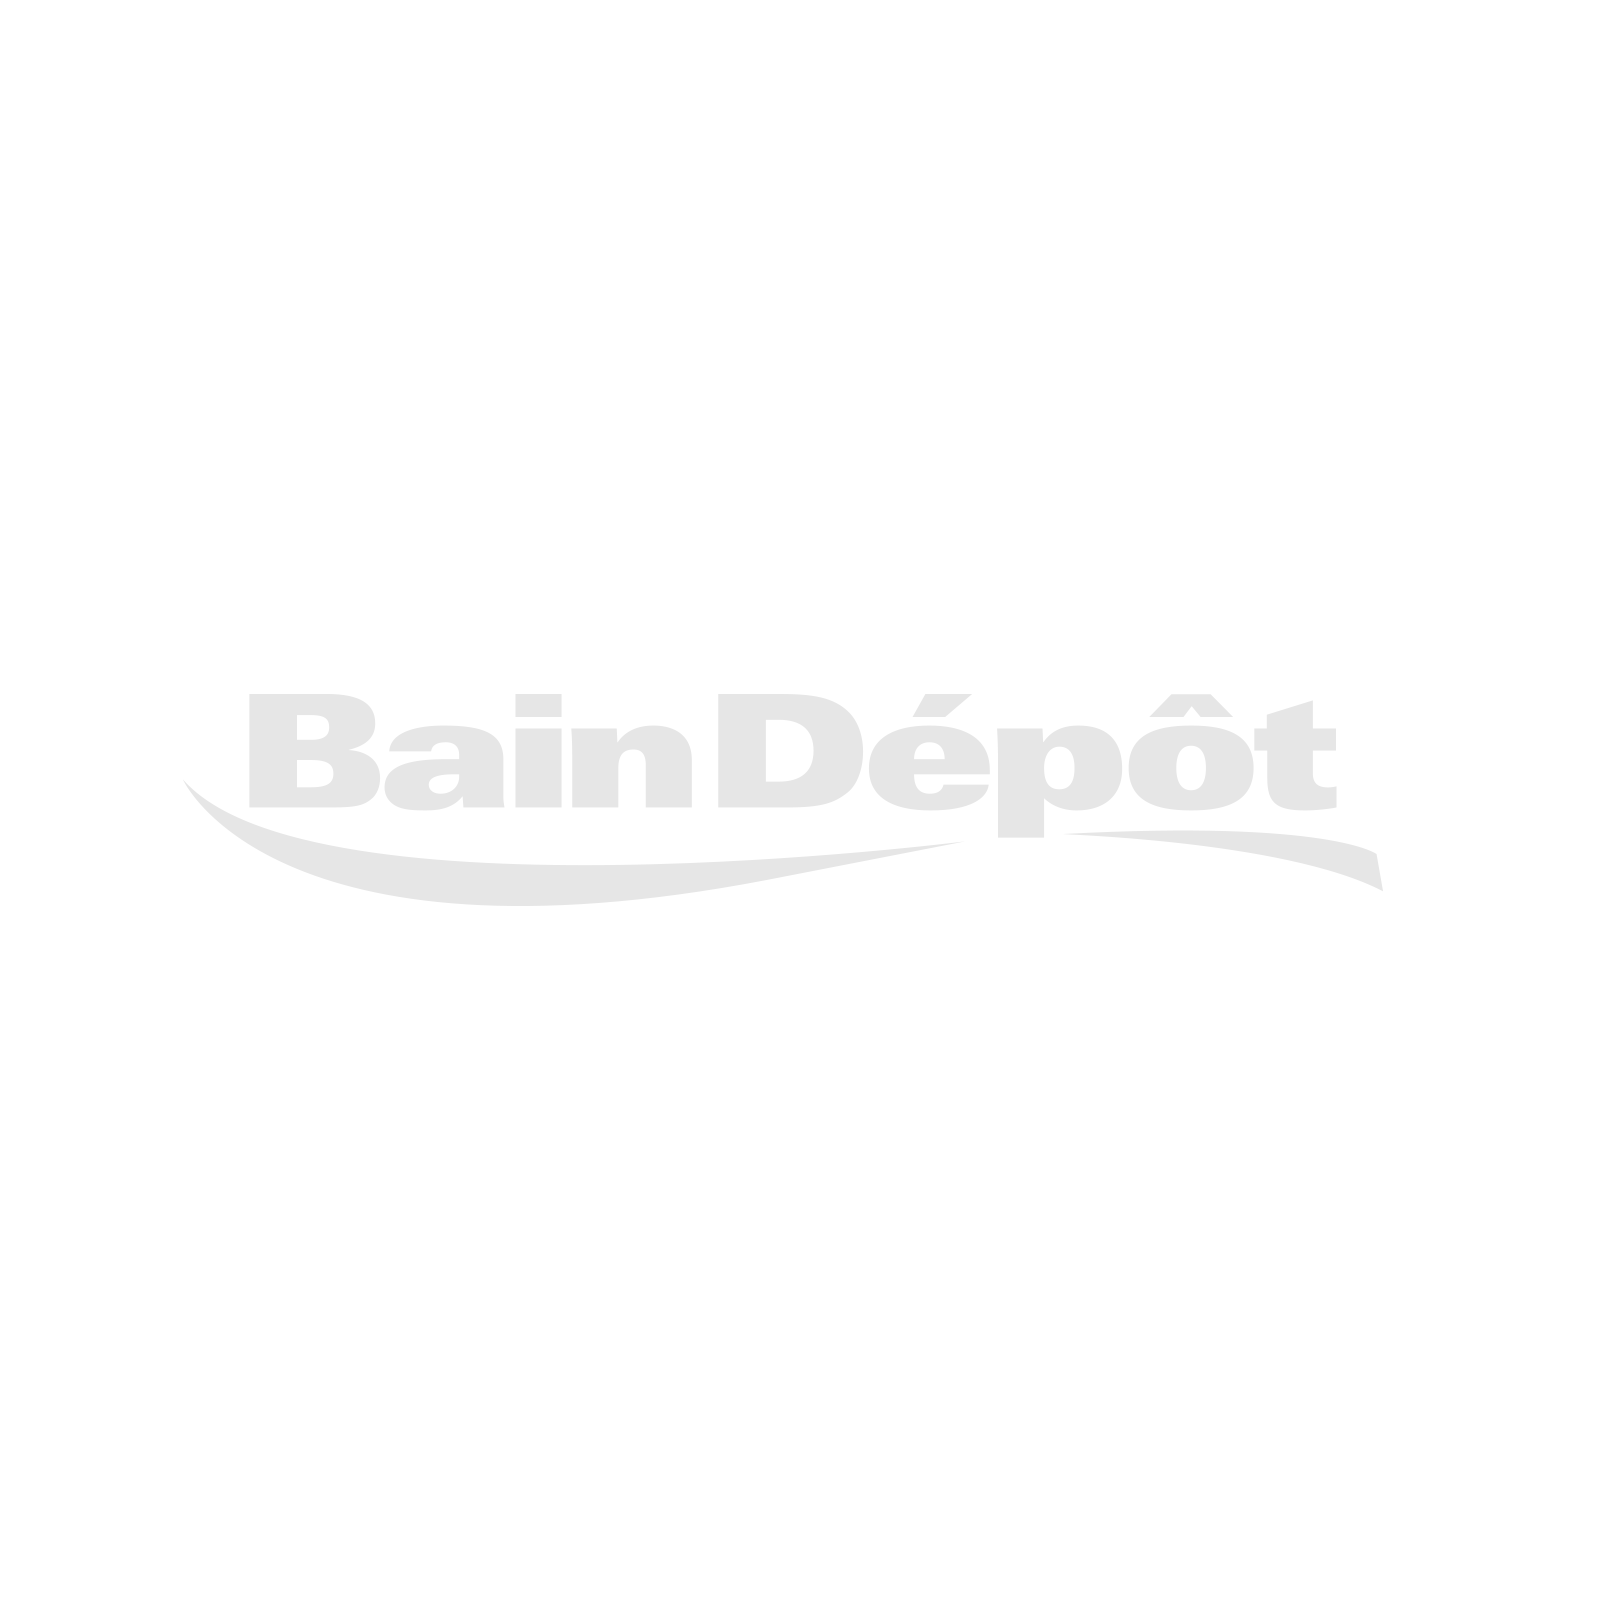 Bathtub swivel panel 39""